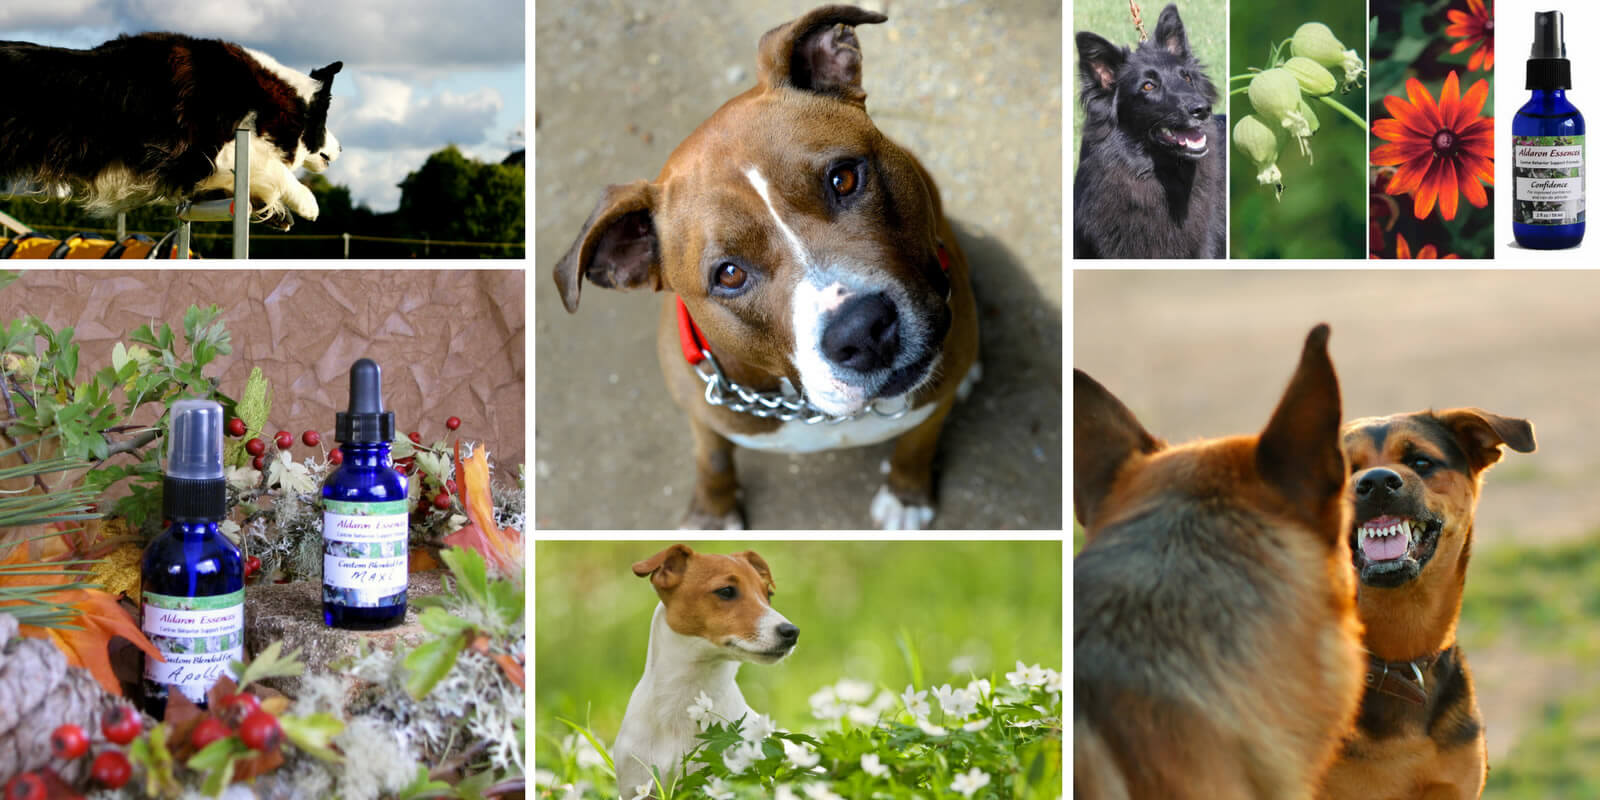 Flower essences for dogs. Safe, gentle, effective.